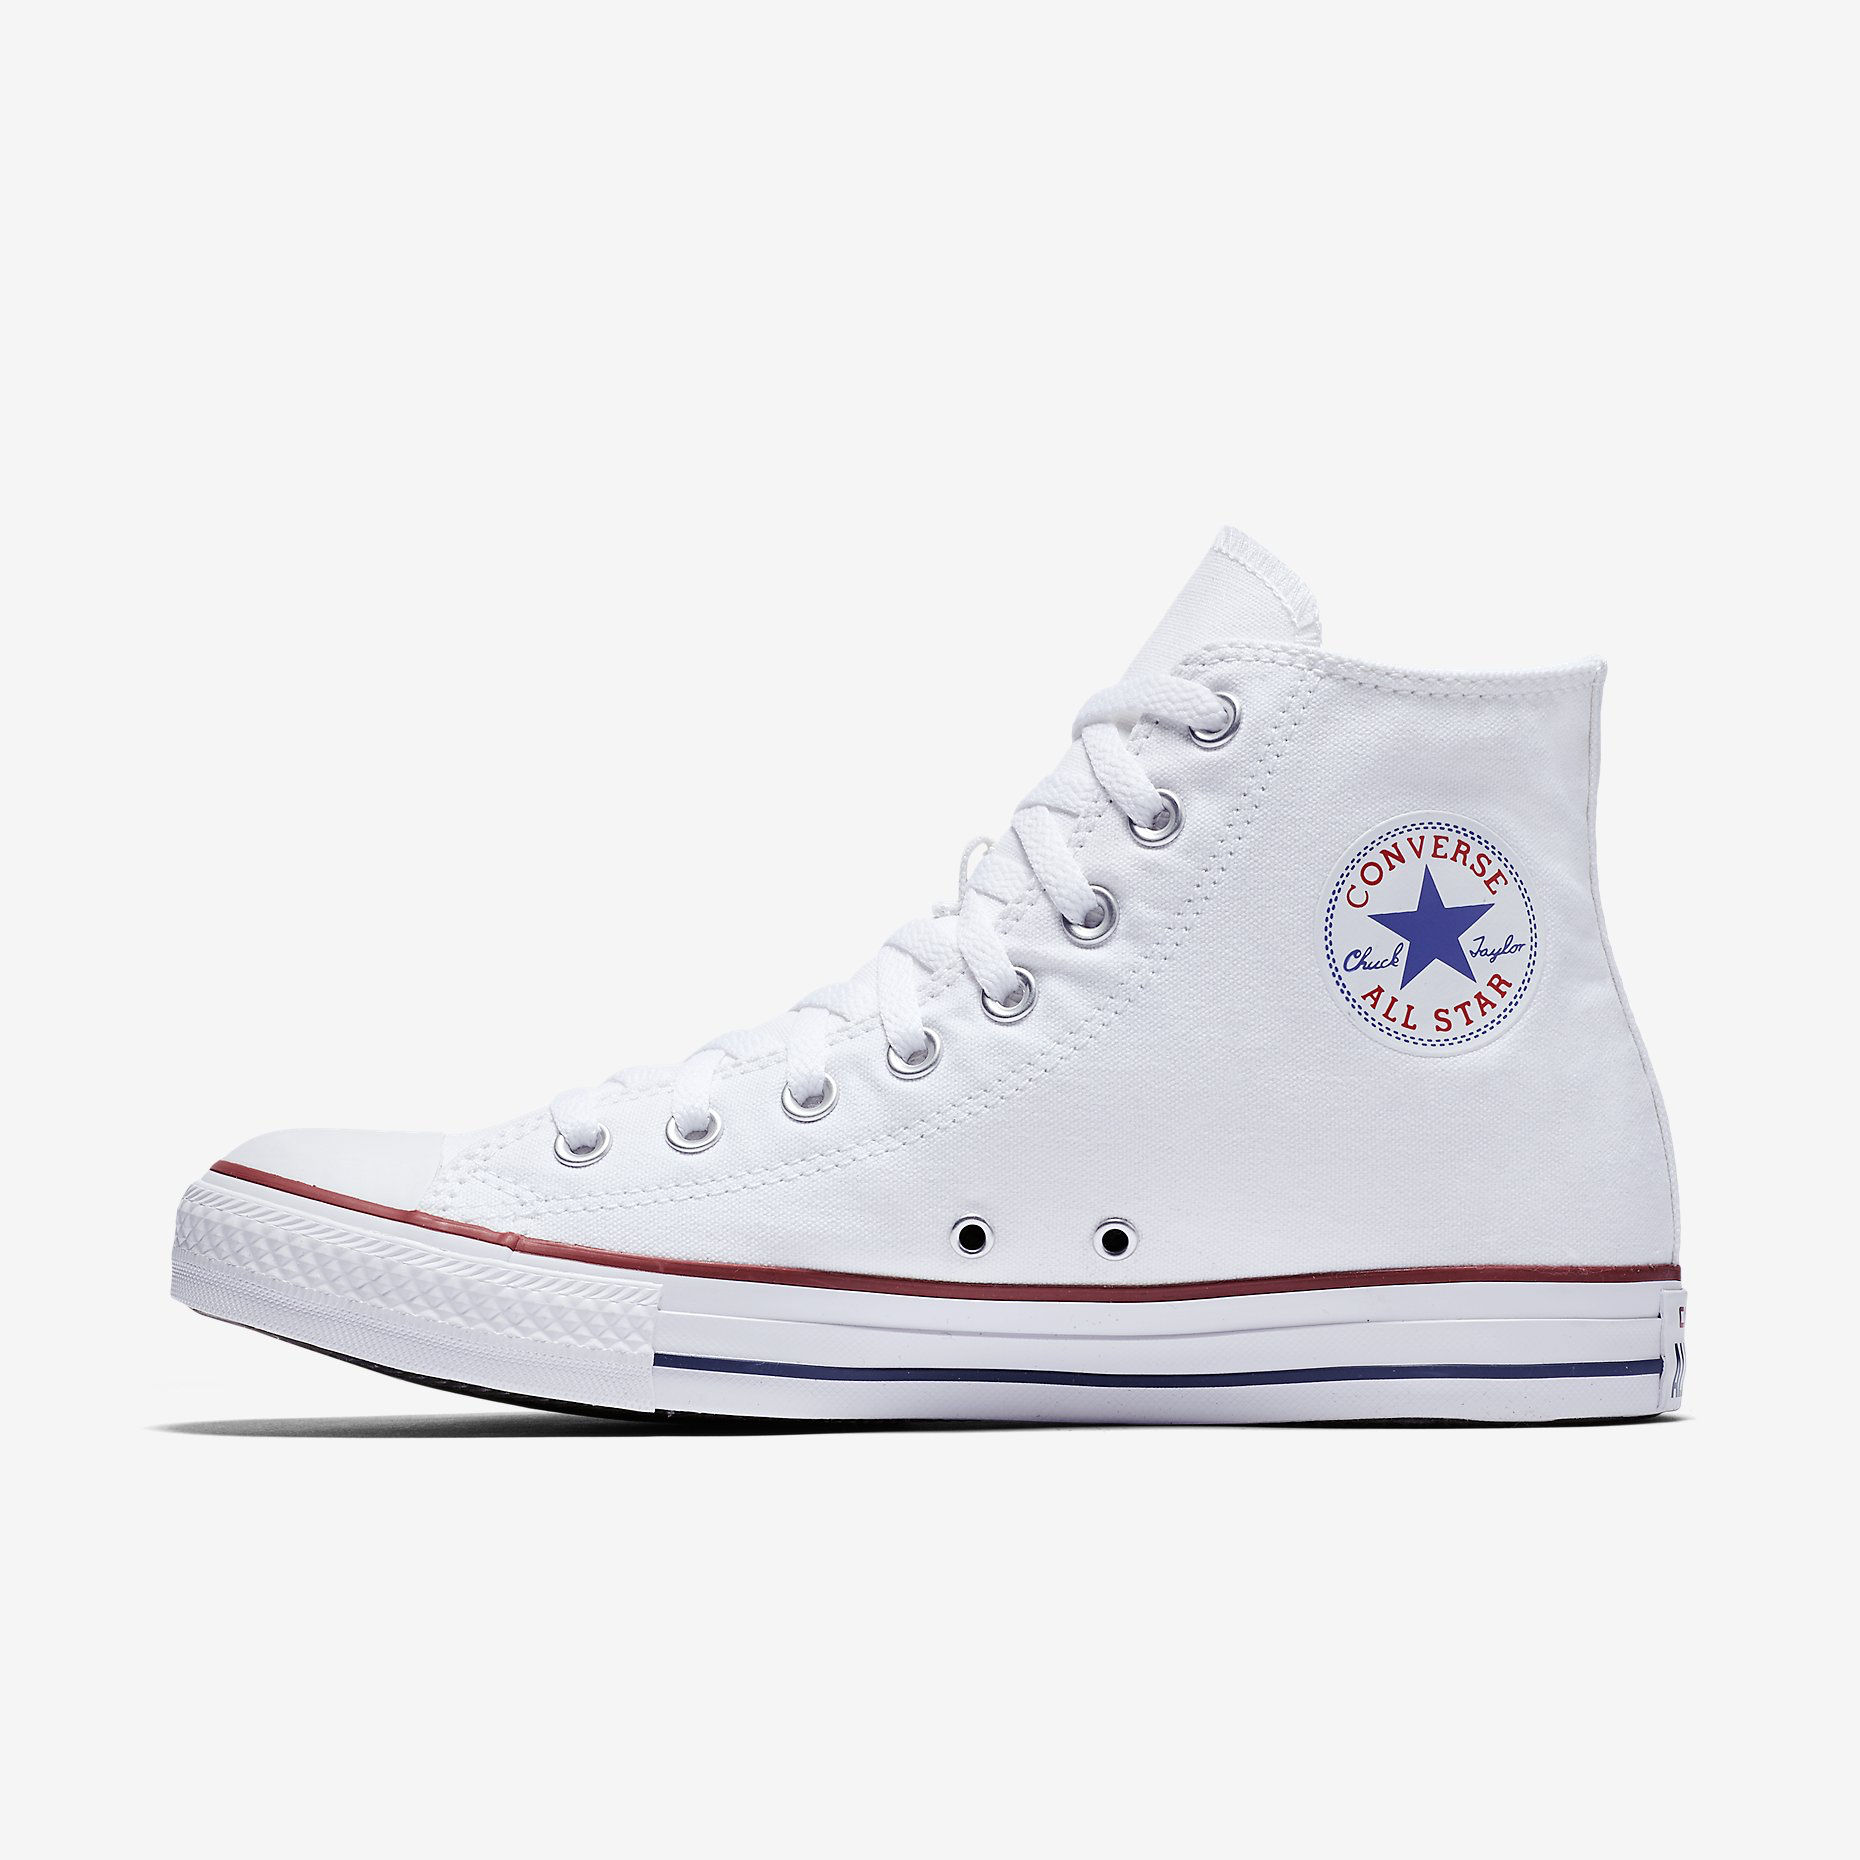 quality products cheaper cheap price Converse Chuck Taylor All Star Kids High Top White